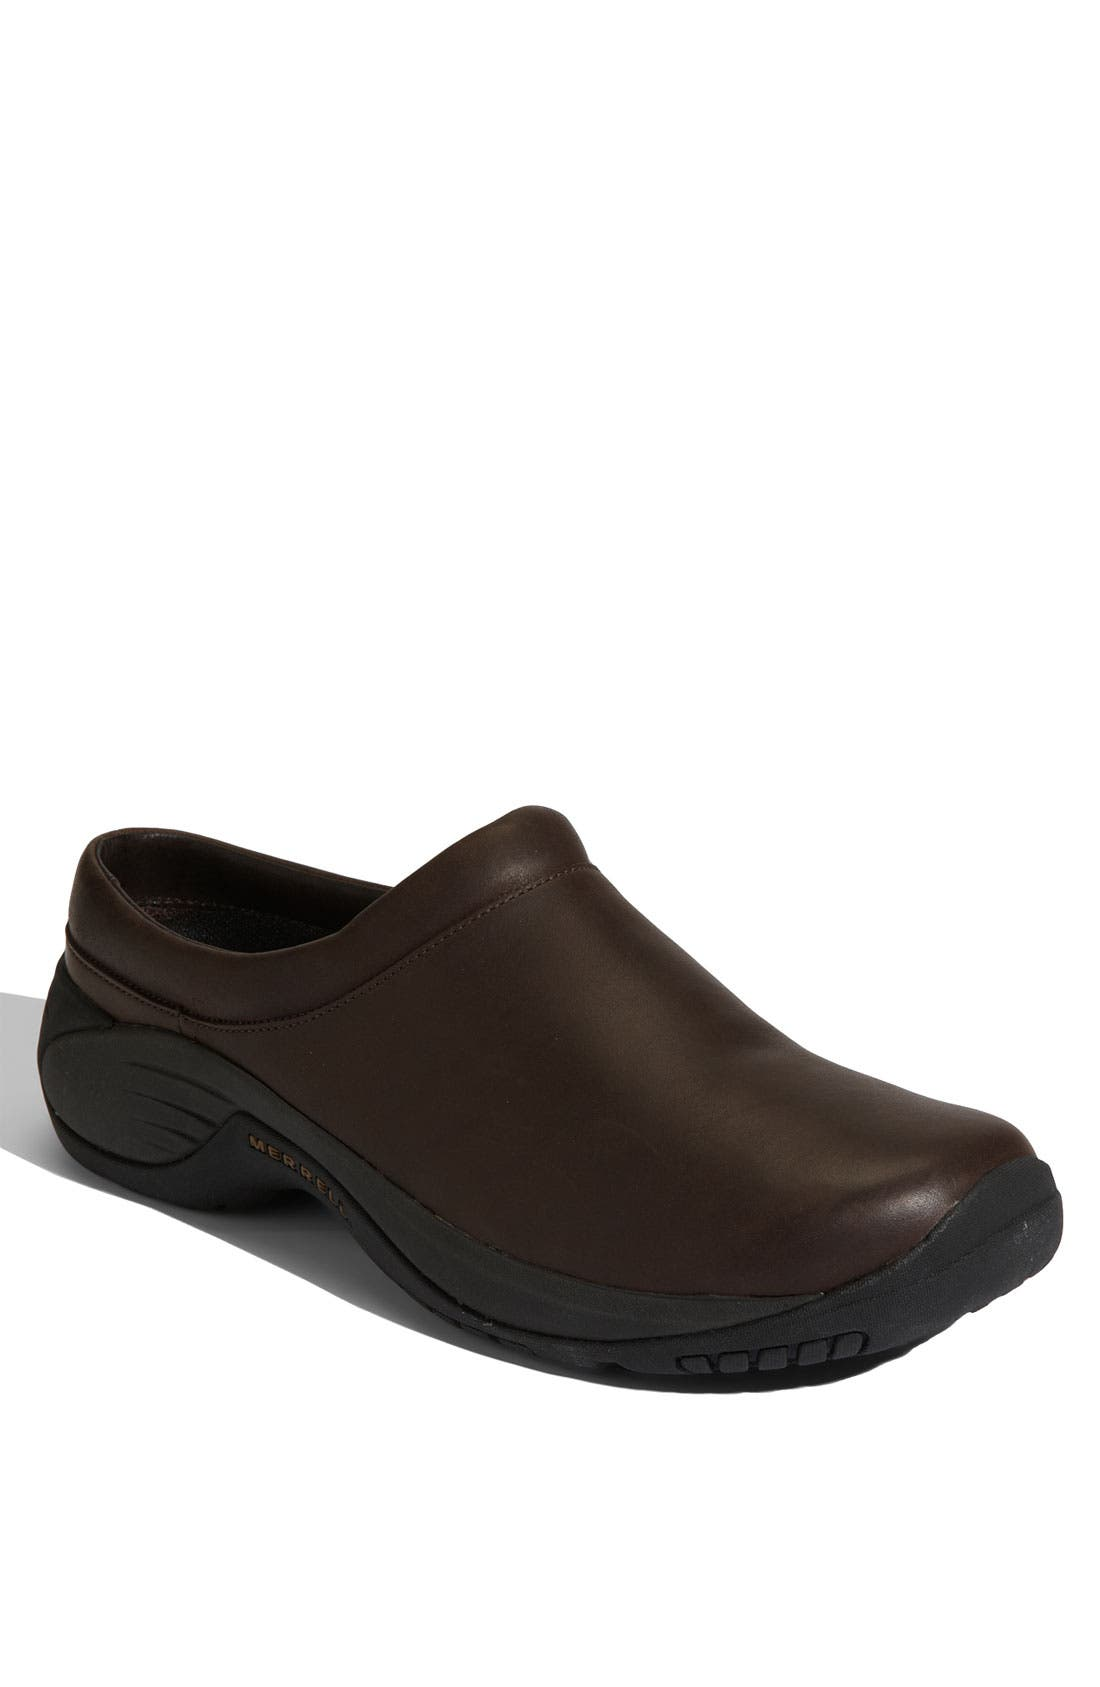 'Encore Gust' Slip-On,                             Main thumbnail 1, color,                             Smooth Bug Brown